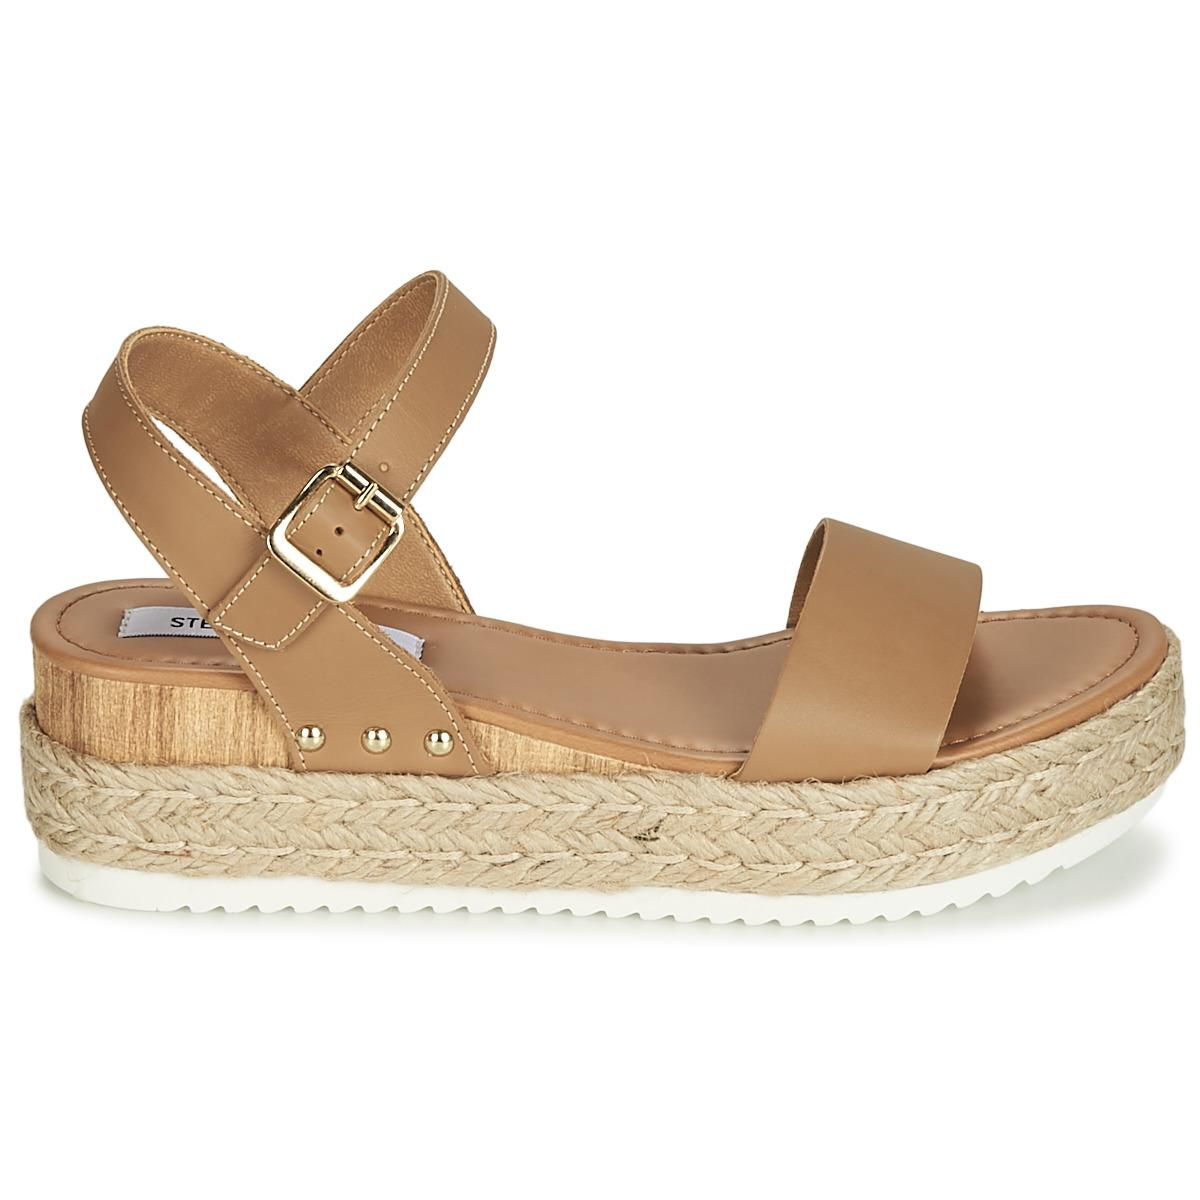 b501645fb7a Steve Madden - Brown Chiara Sandals - Lyst. View fullscreen